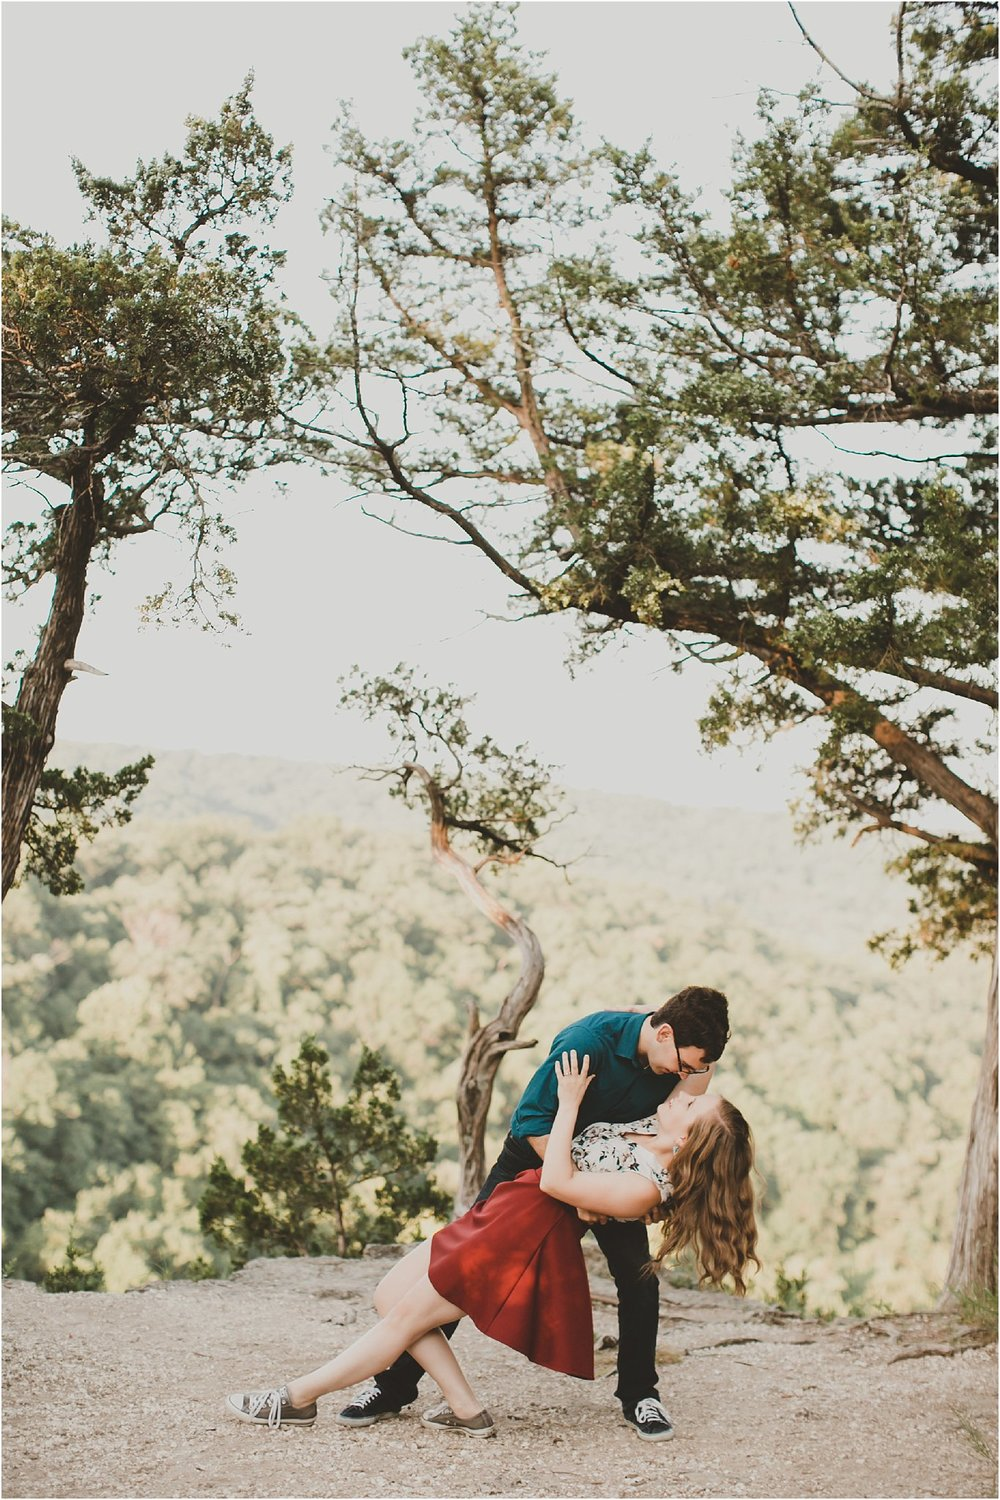 PattengalePhotography_Laura&Ryan_HaHaTonka_StatePark_Lake_of_the_Ozarks_EngagementSession_Adventure_Hiking_boho_Outdoor_Summertime_Style_Missouri_WeddingPhotographer_0020.jpg